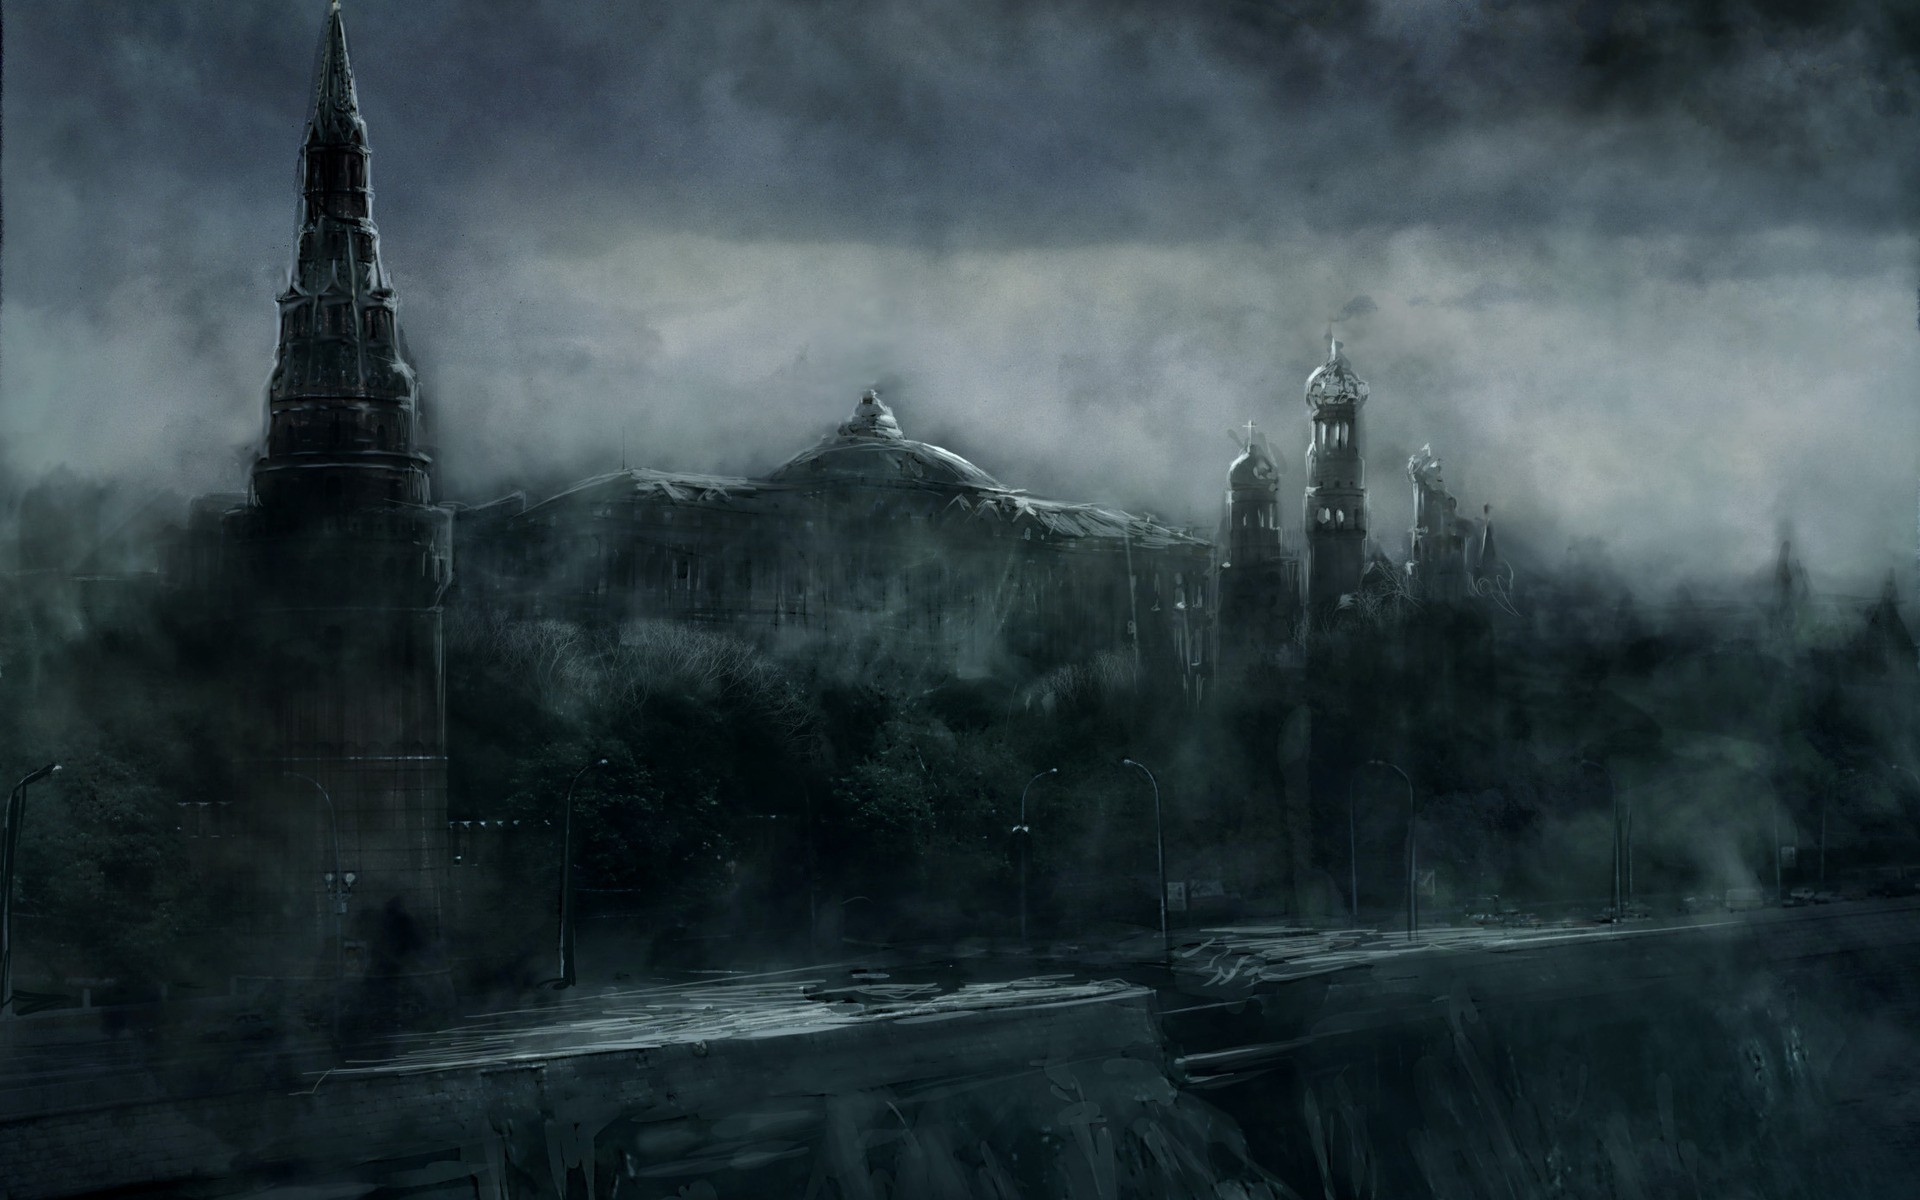 Ruins post-apocalyptic architecture mist buildings fantasy art digital art